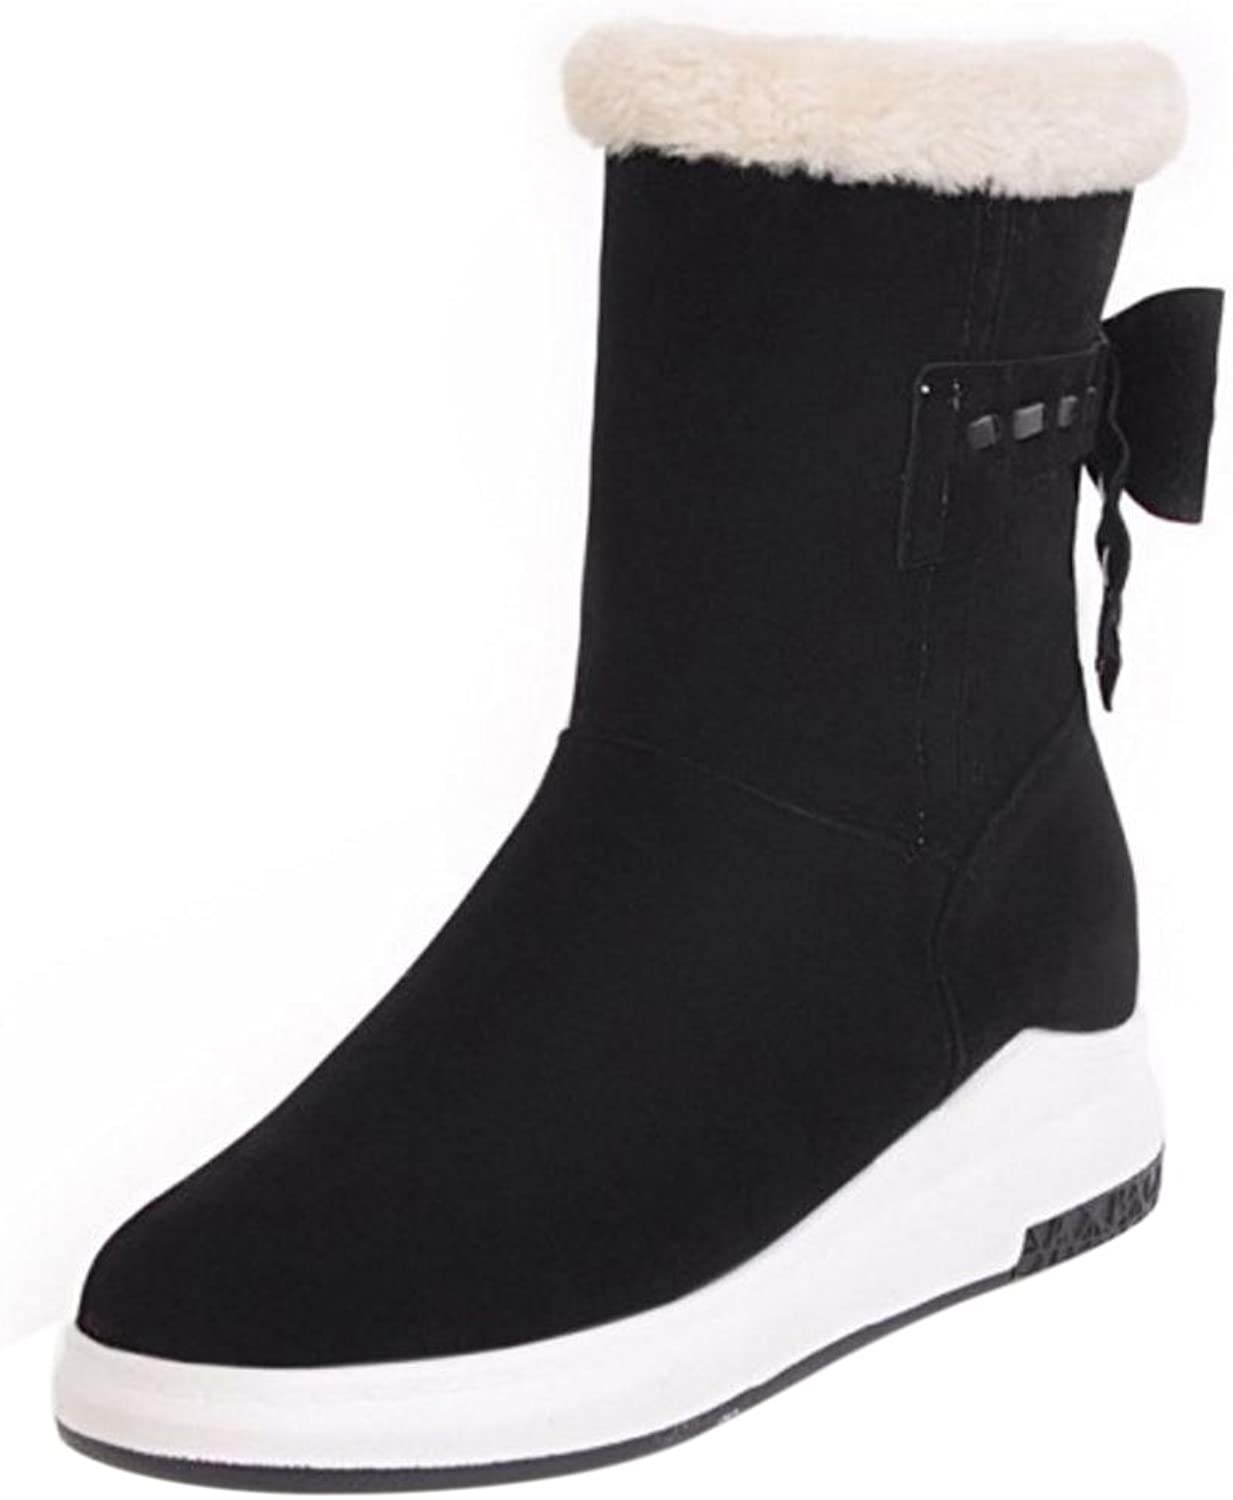 KemeKiss Women Boots Pull On Low Hidden Heel